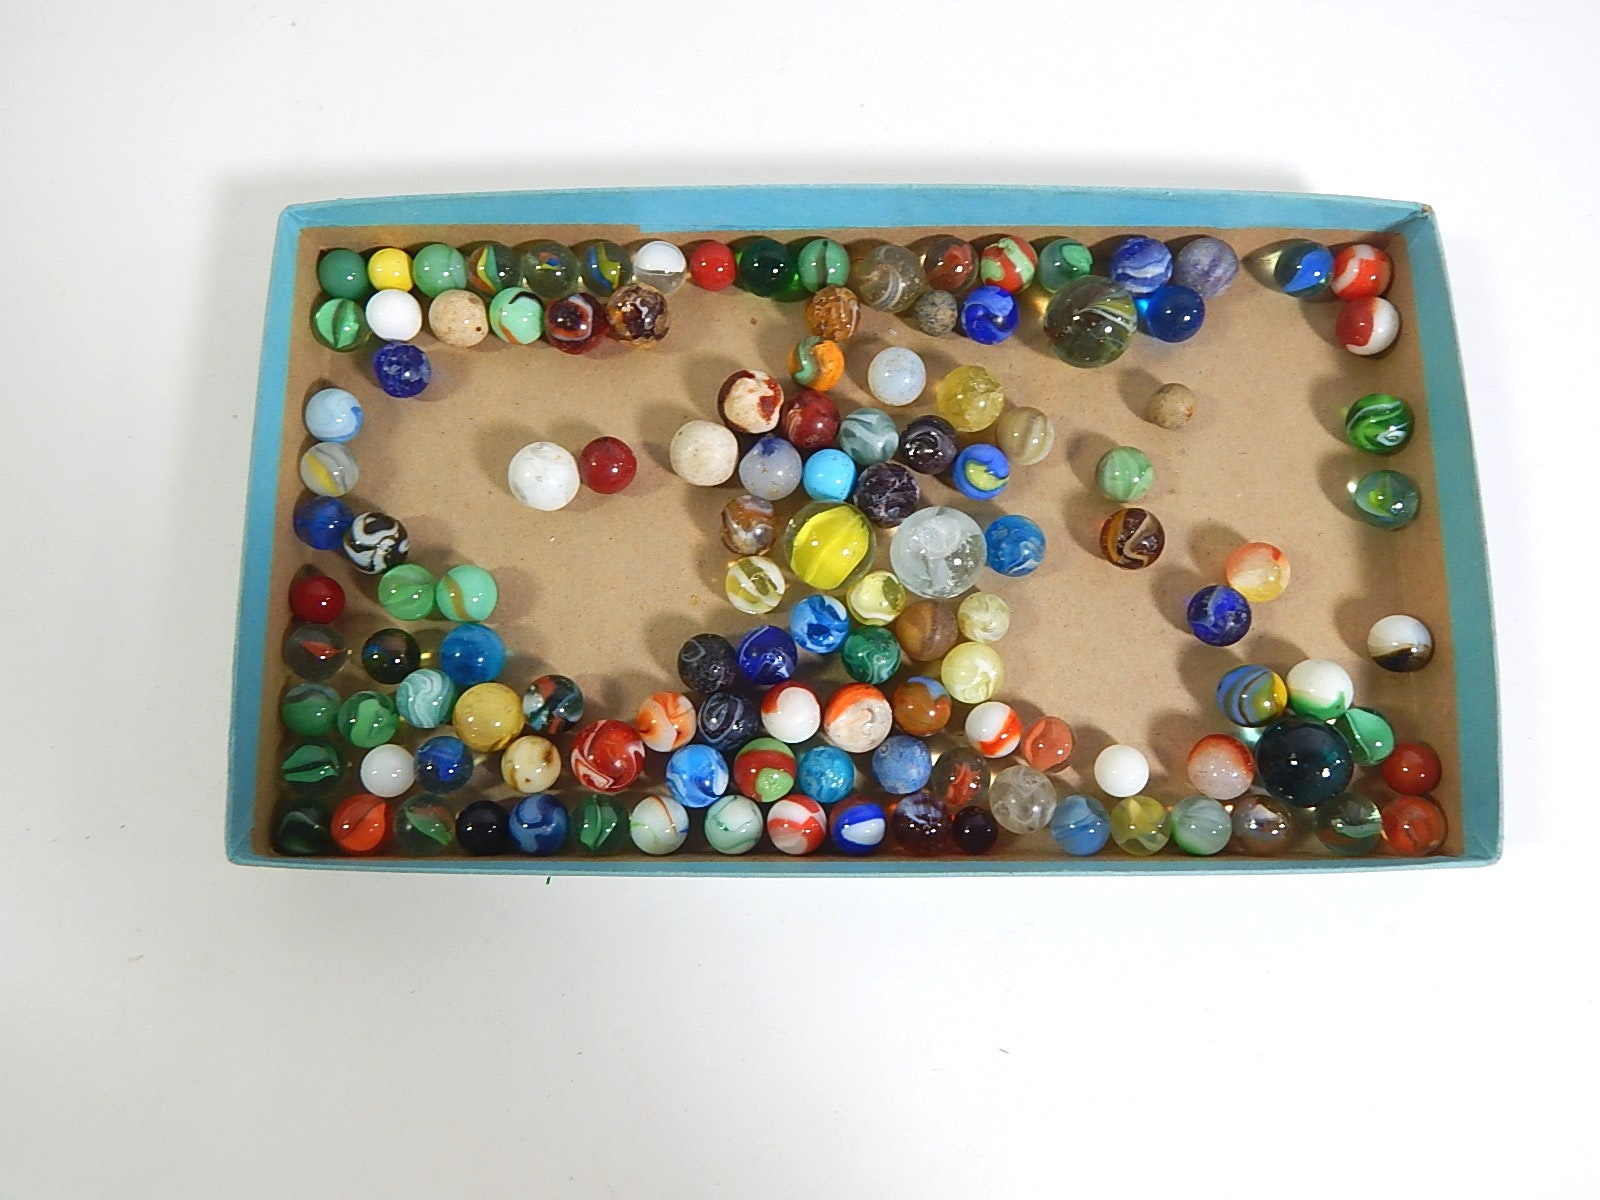 Collection of Vintage Glass Marbles - Over 100 Count